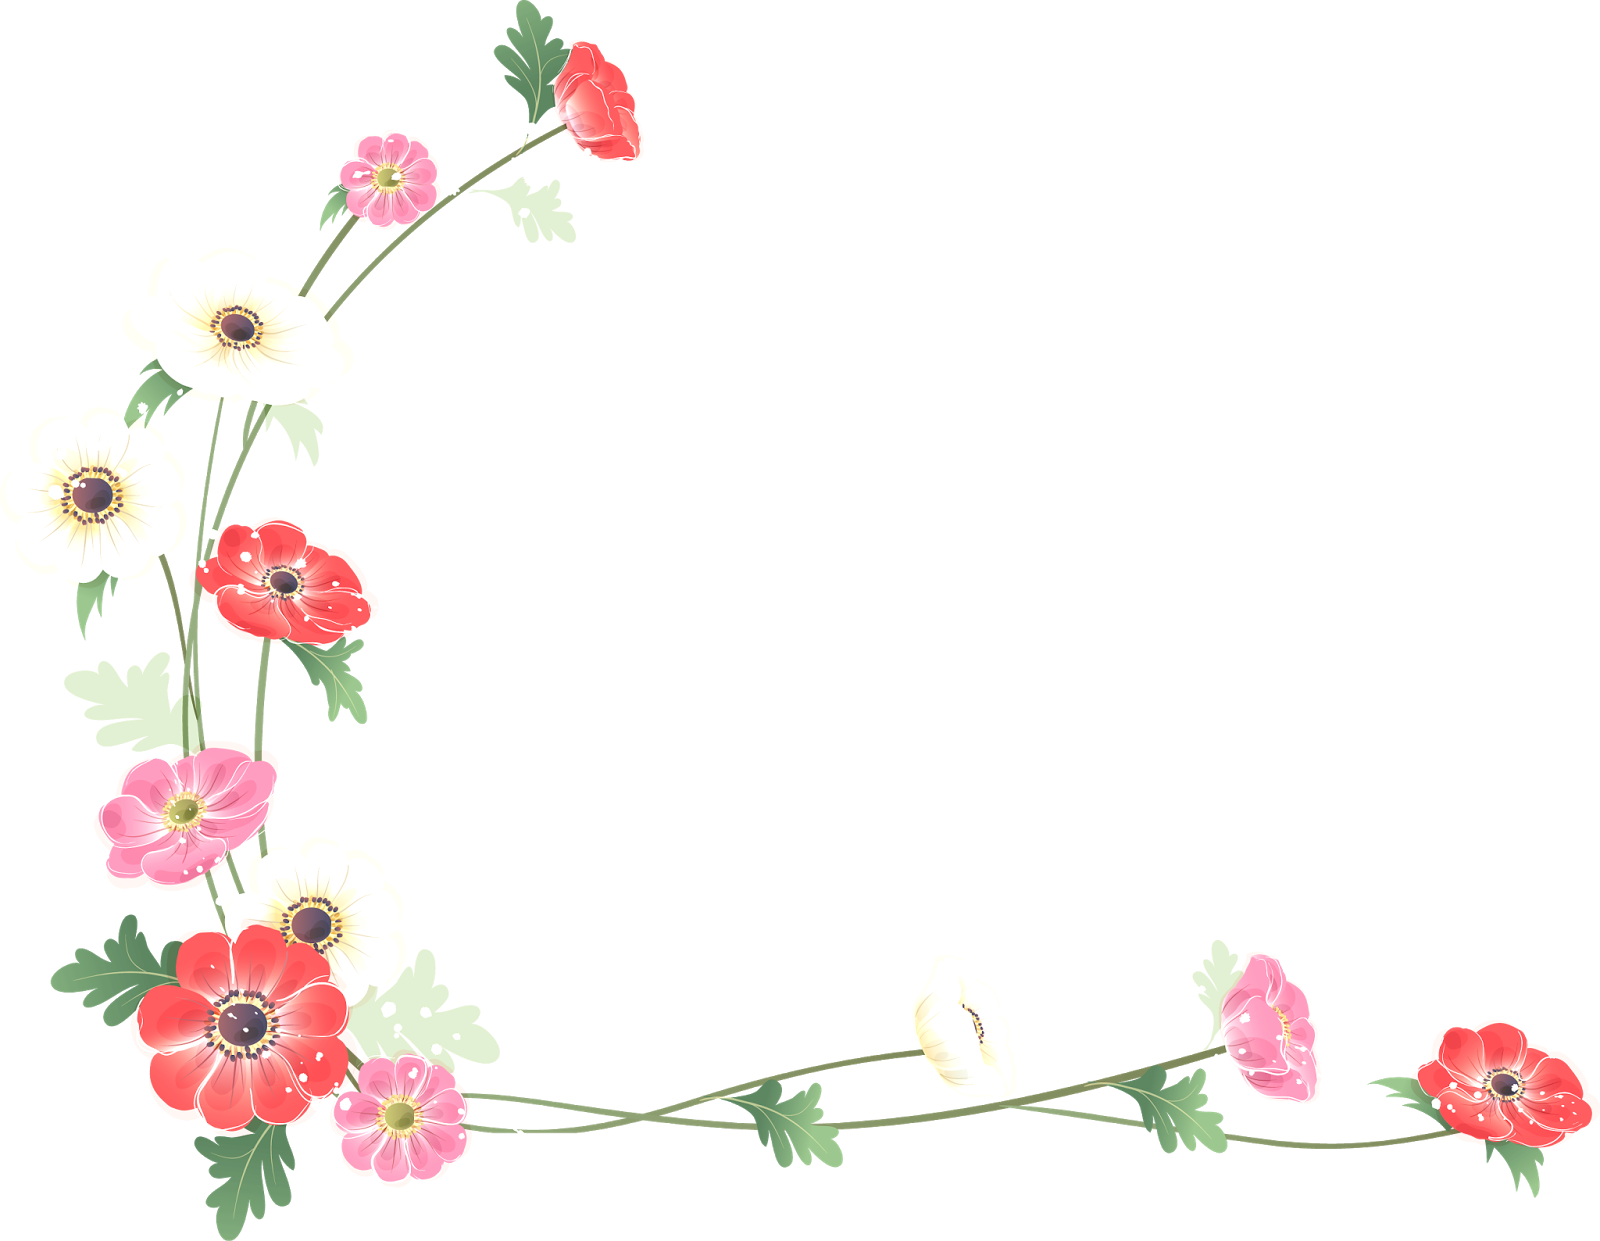 Clipart borders wildflower, Picture #419555 clipart borders.